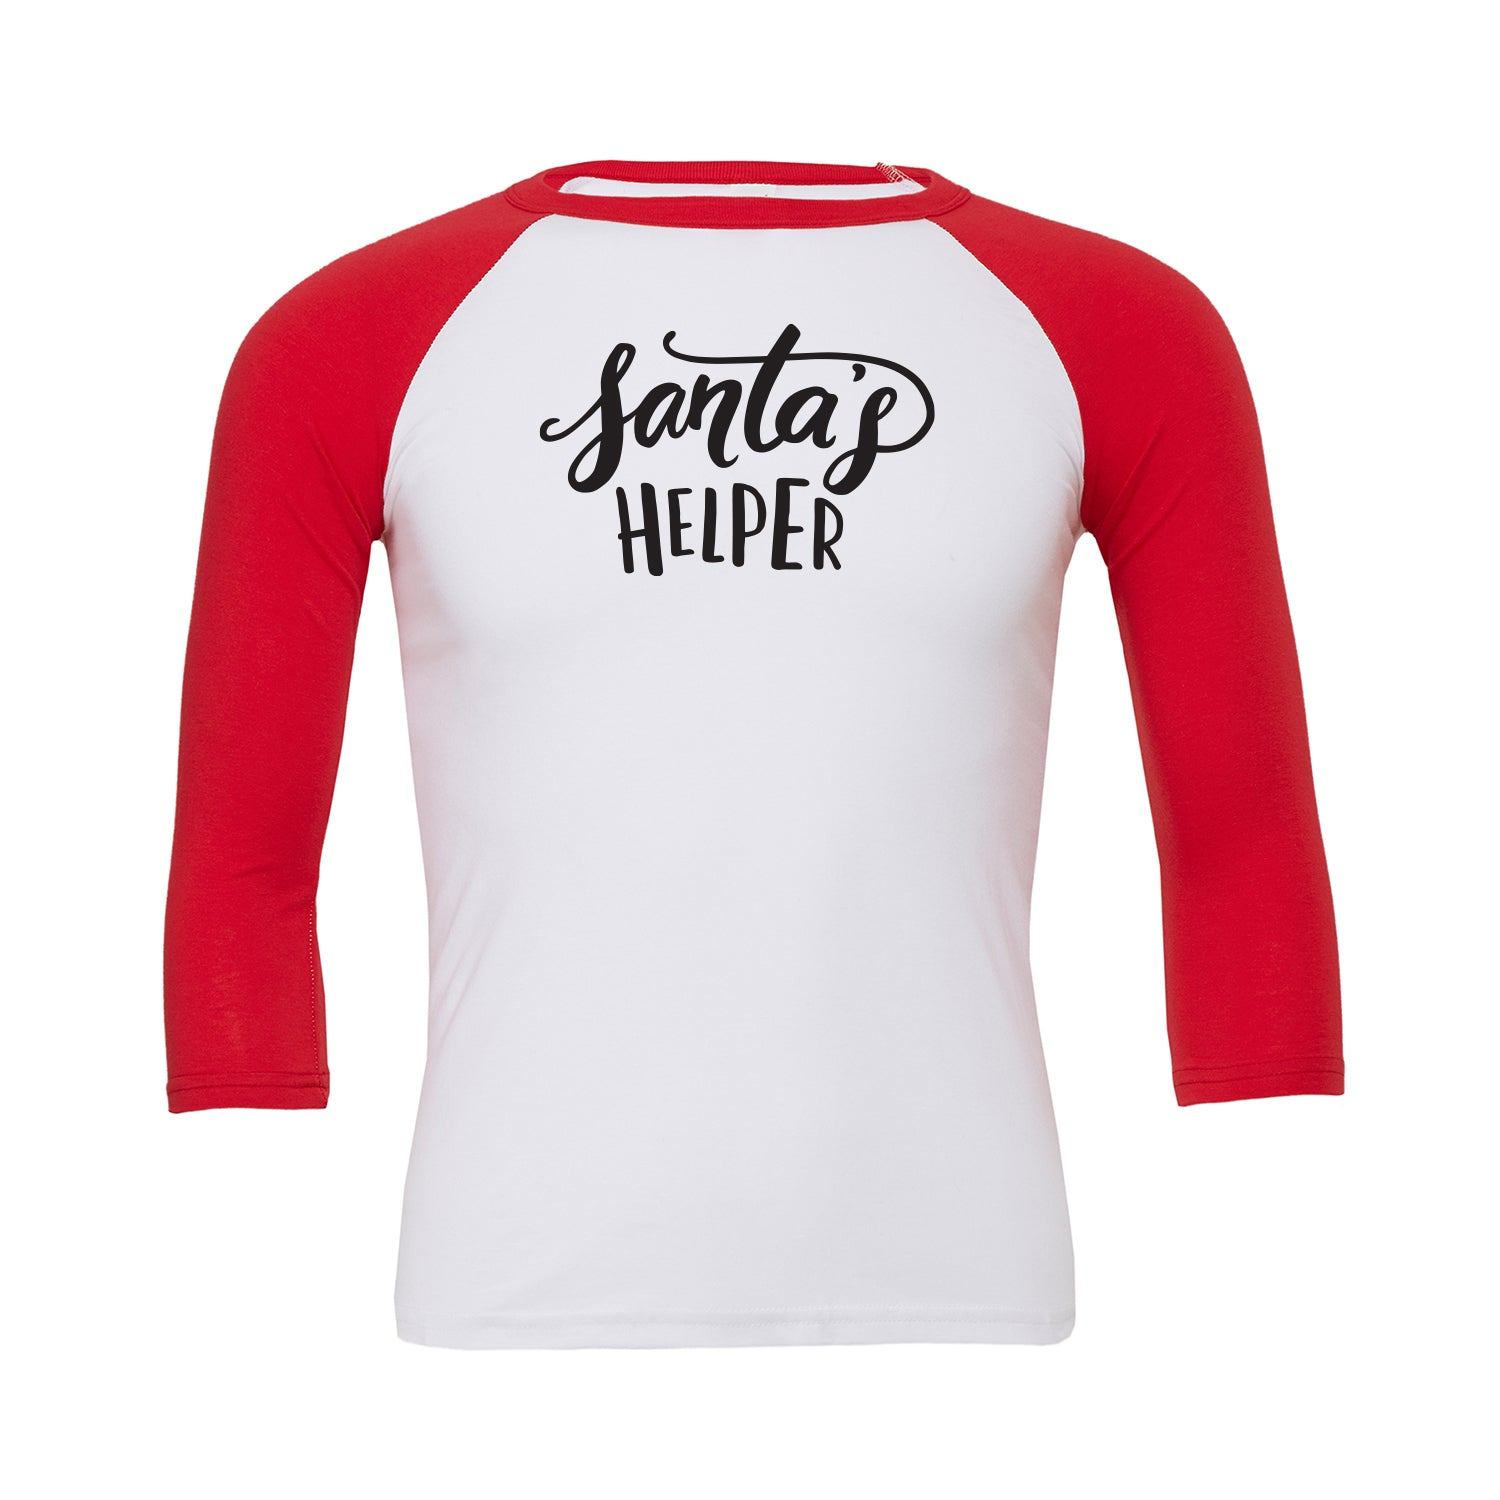 Santa's Helper Baseball Tee